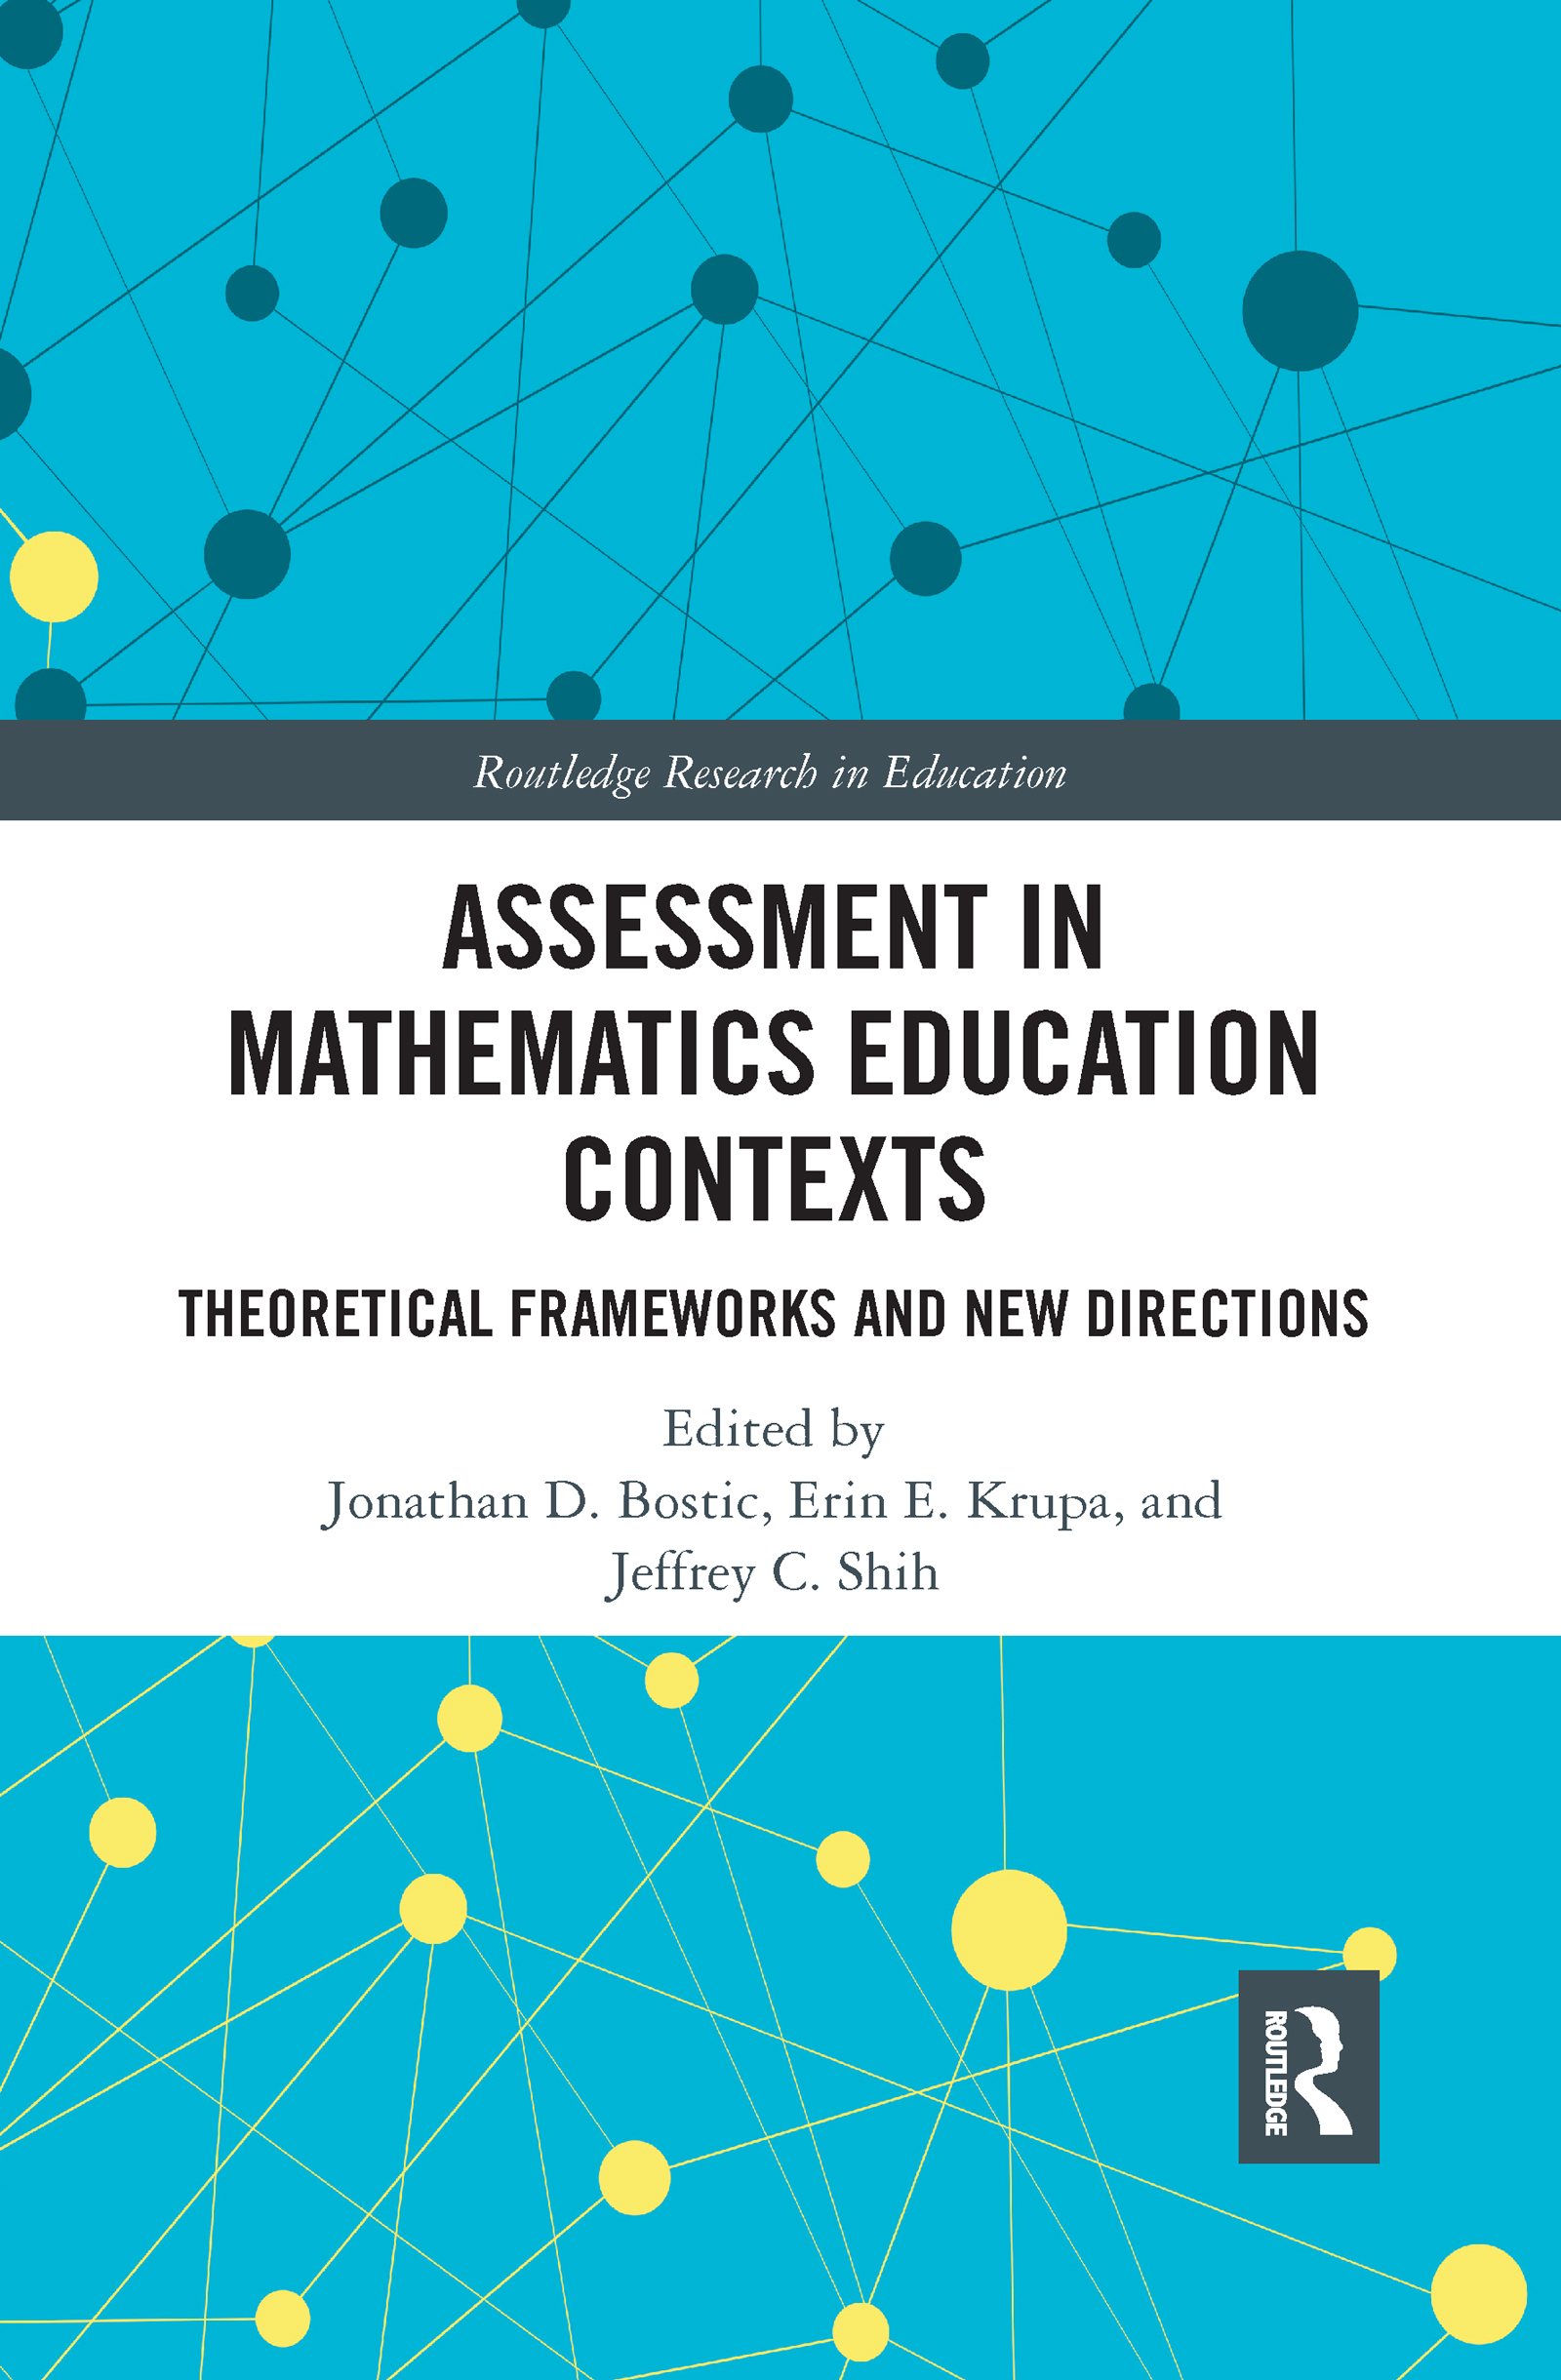 Assessment in Mathematics Education Contexts